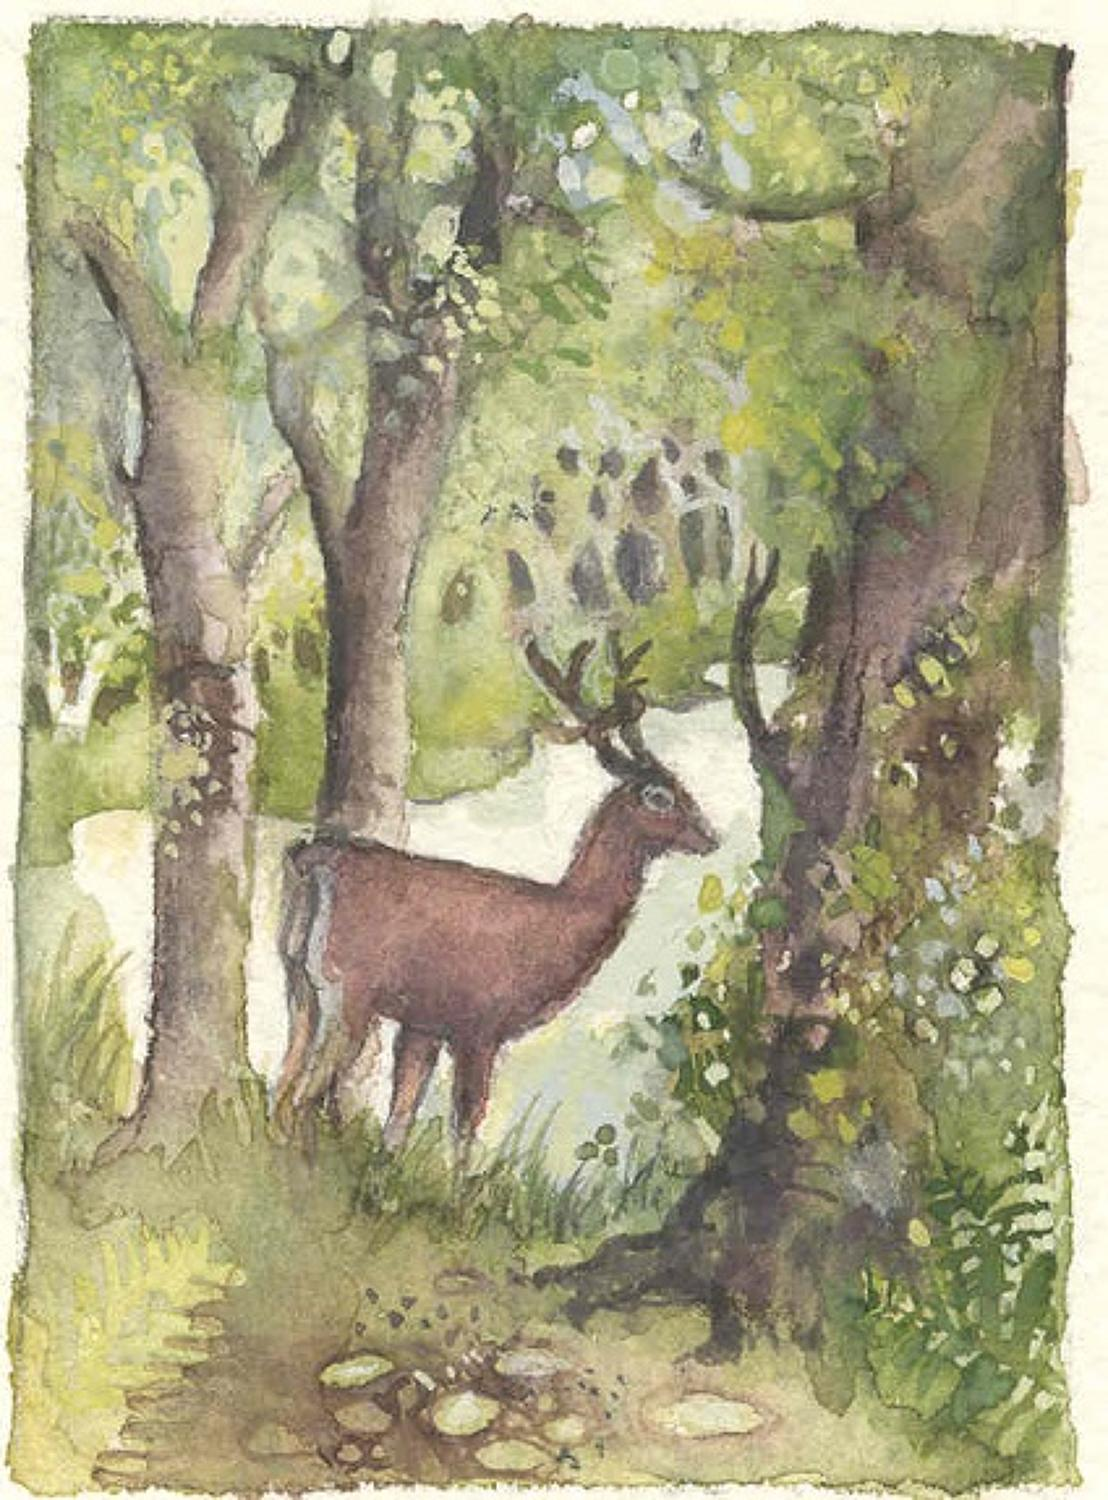 Deer in wood